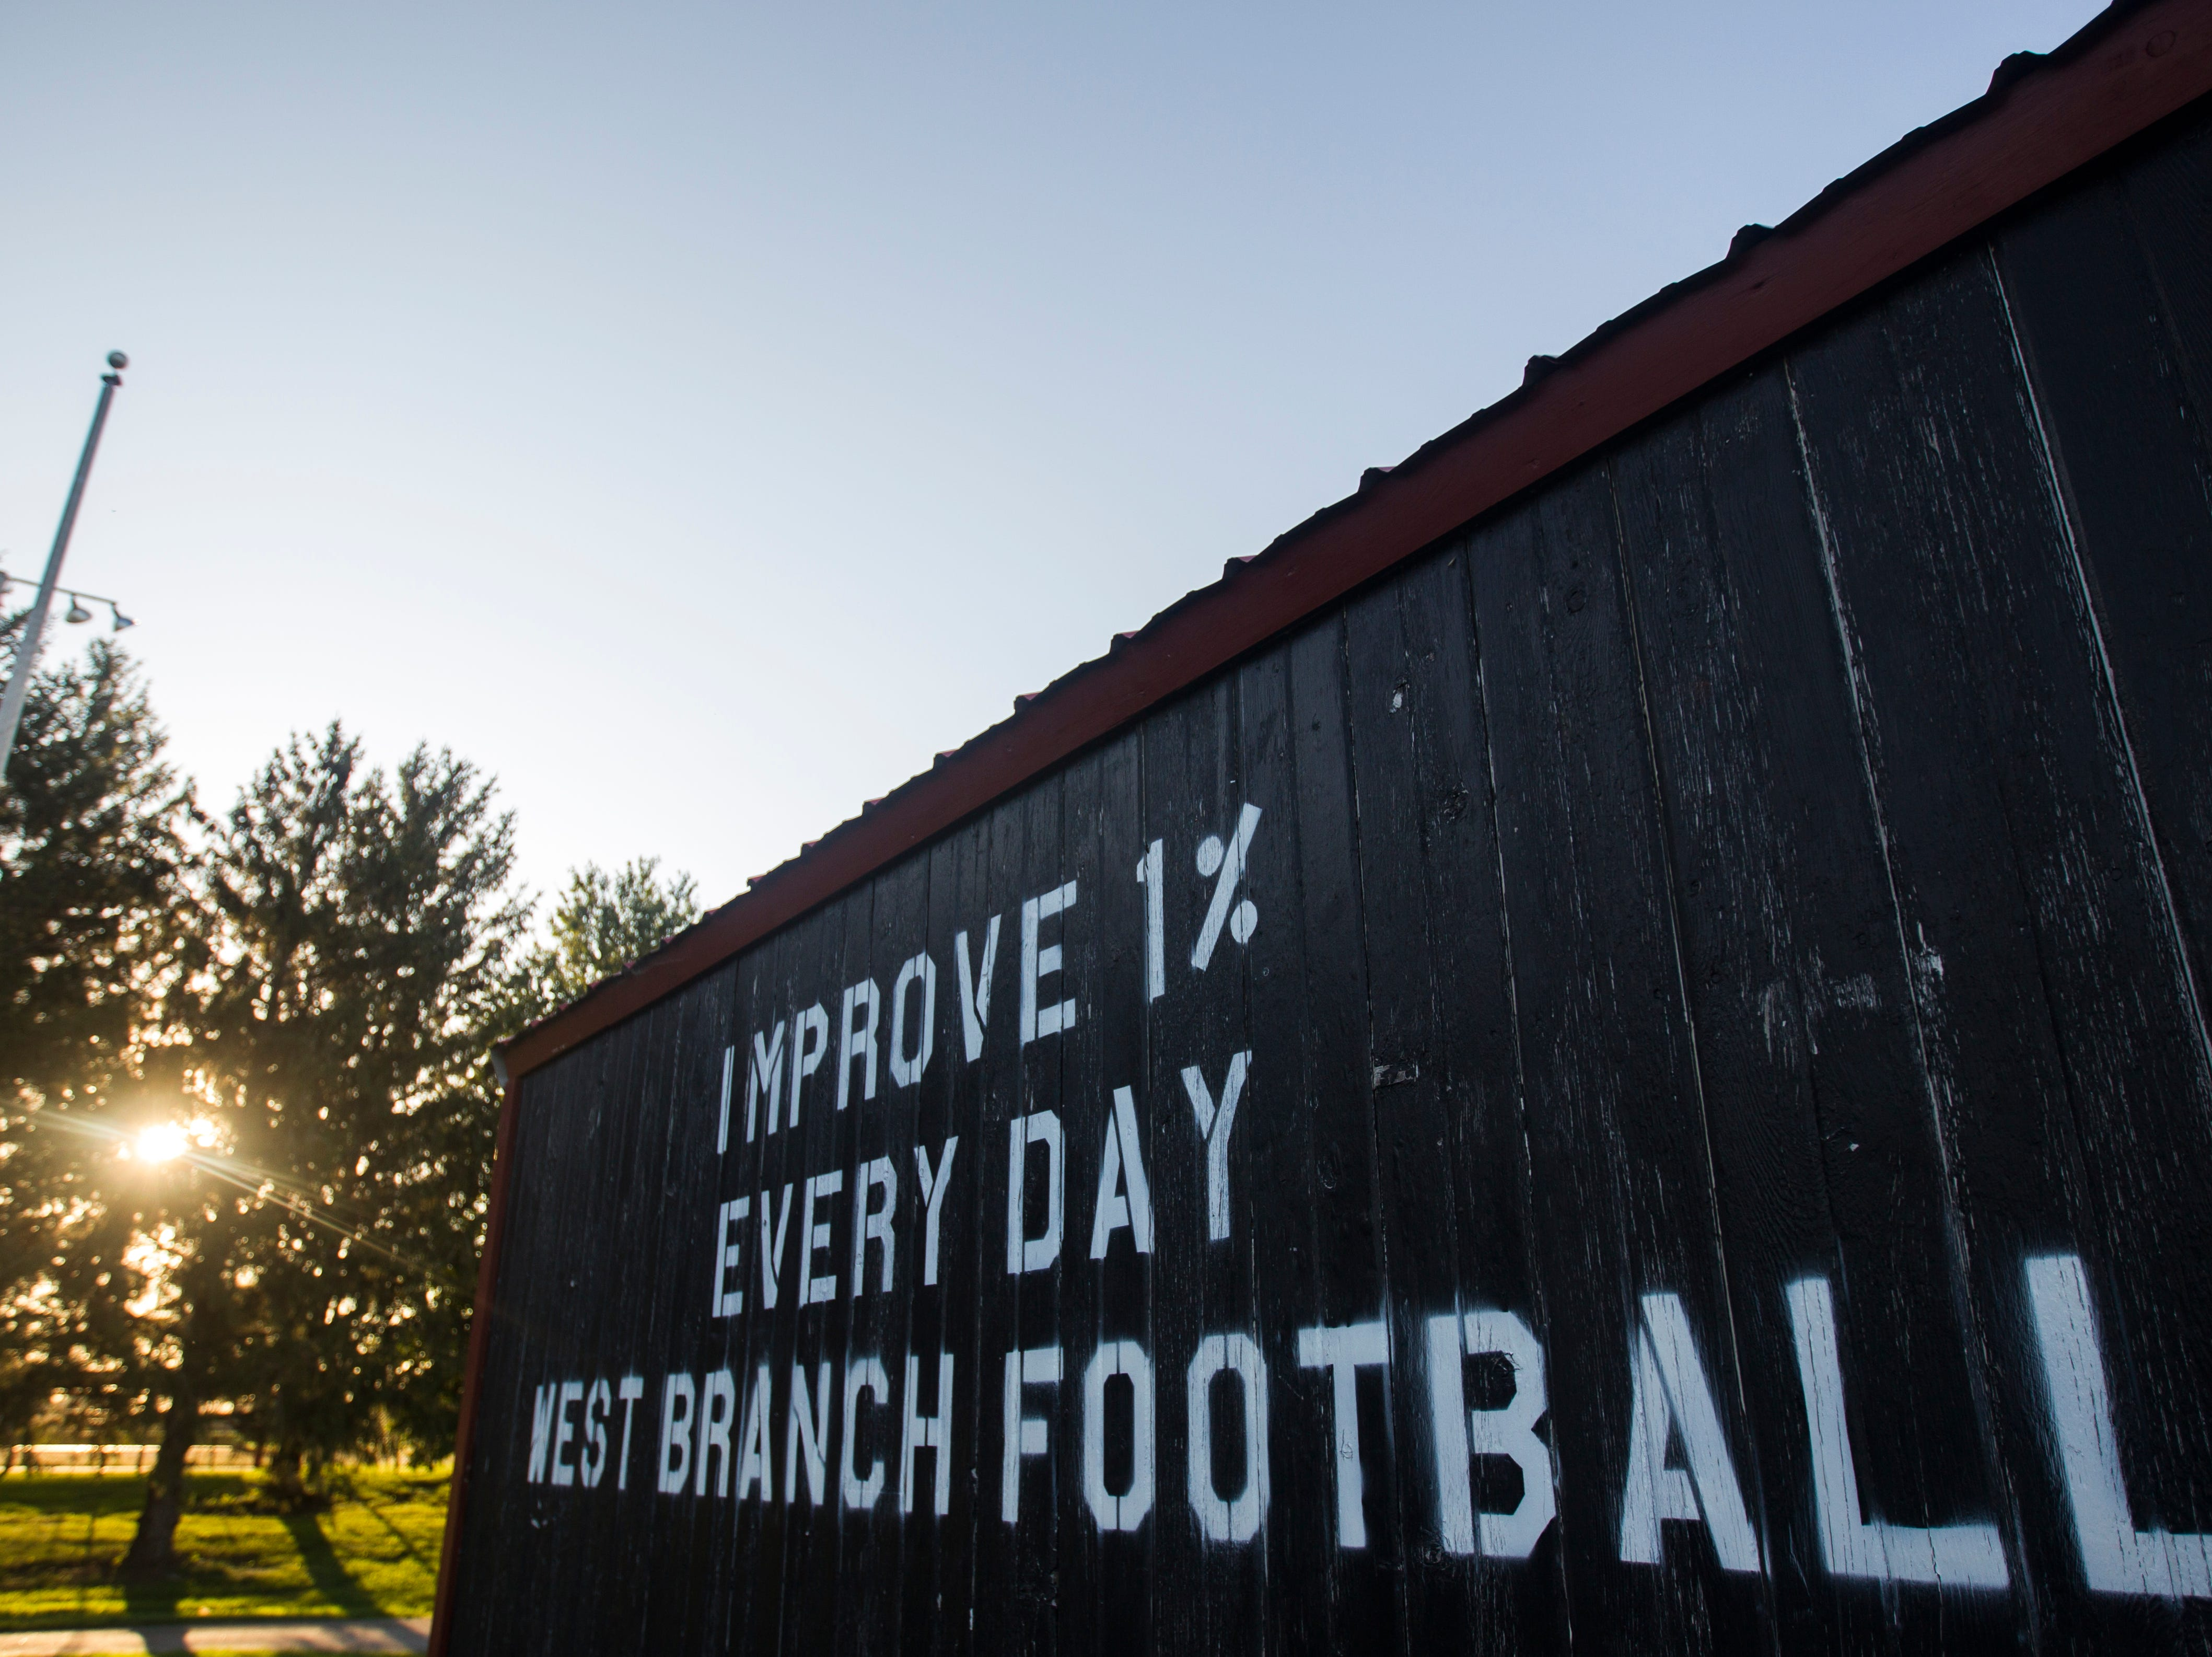 A storage shed adjacent to West Branch's practice field is seen during a varsity football practice on Tuesday, Sept. 11, 2018, at West Branch High School.